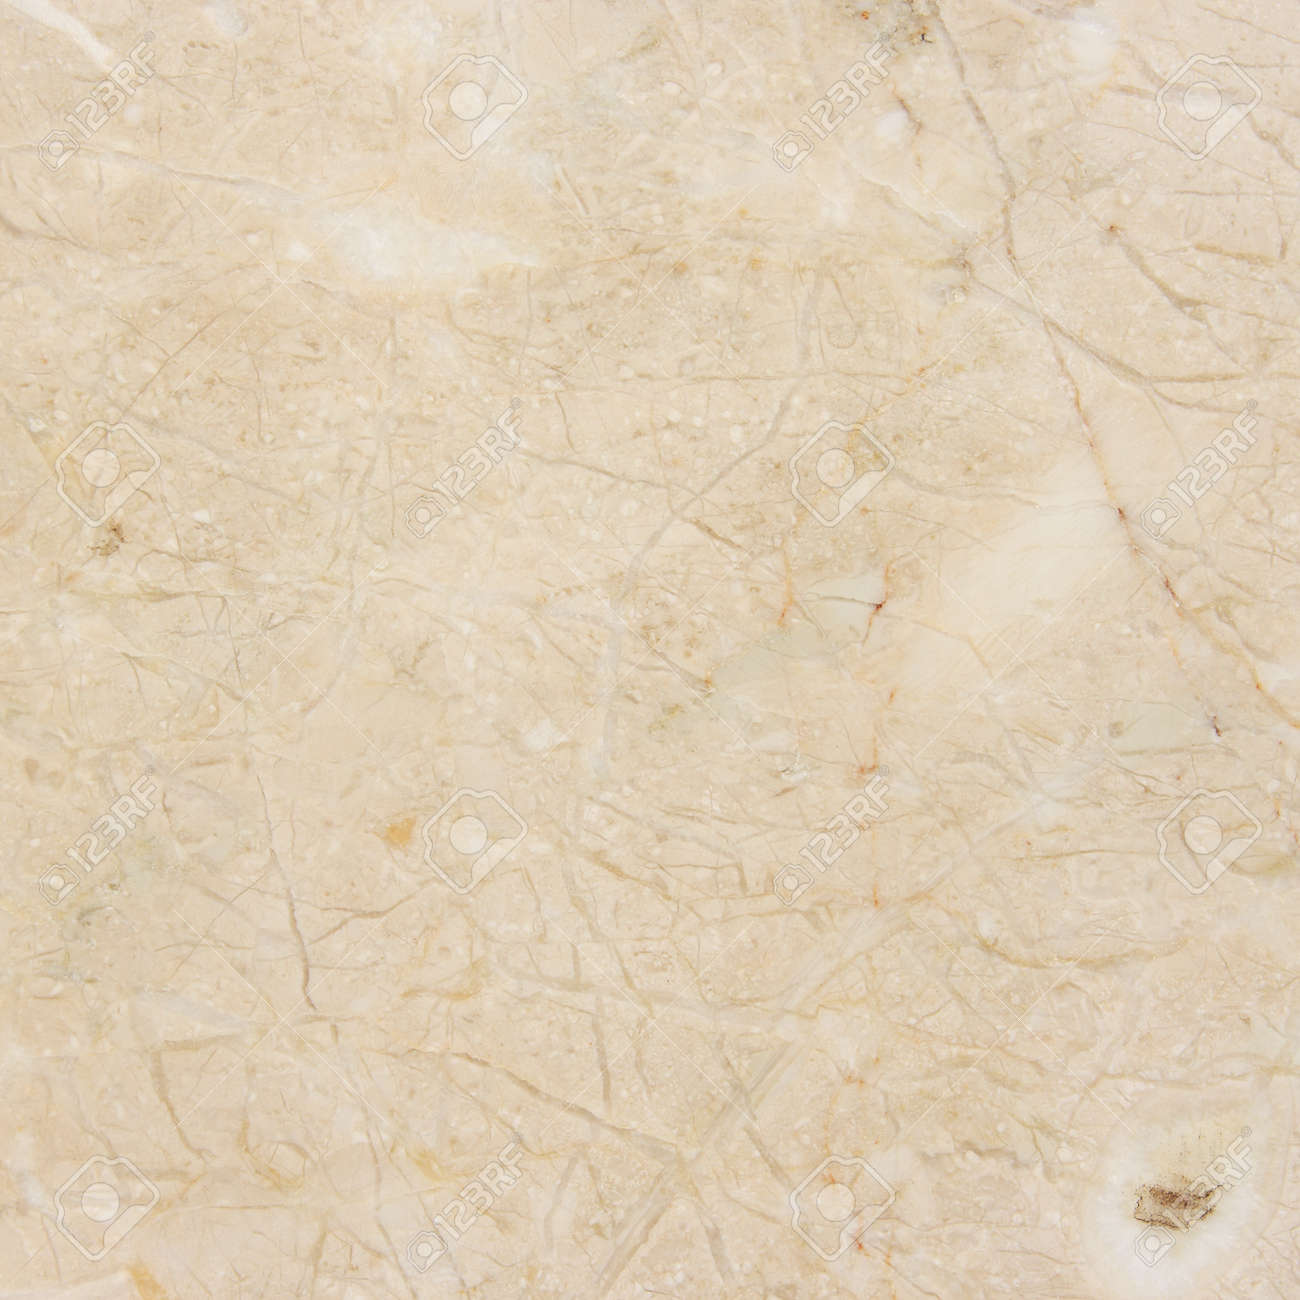 Beige Italian Marble With Natural Pattern Natural Marble Stock Photo Picture And Royalty Free Image Image 36227312